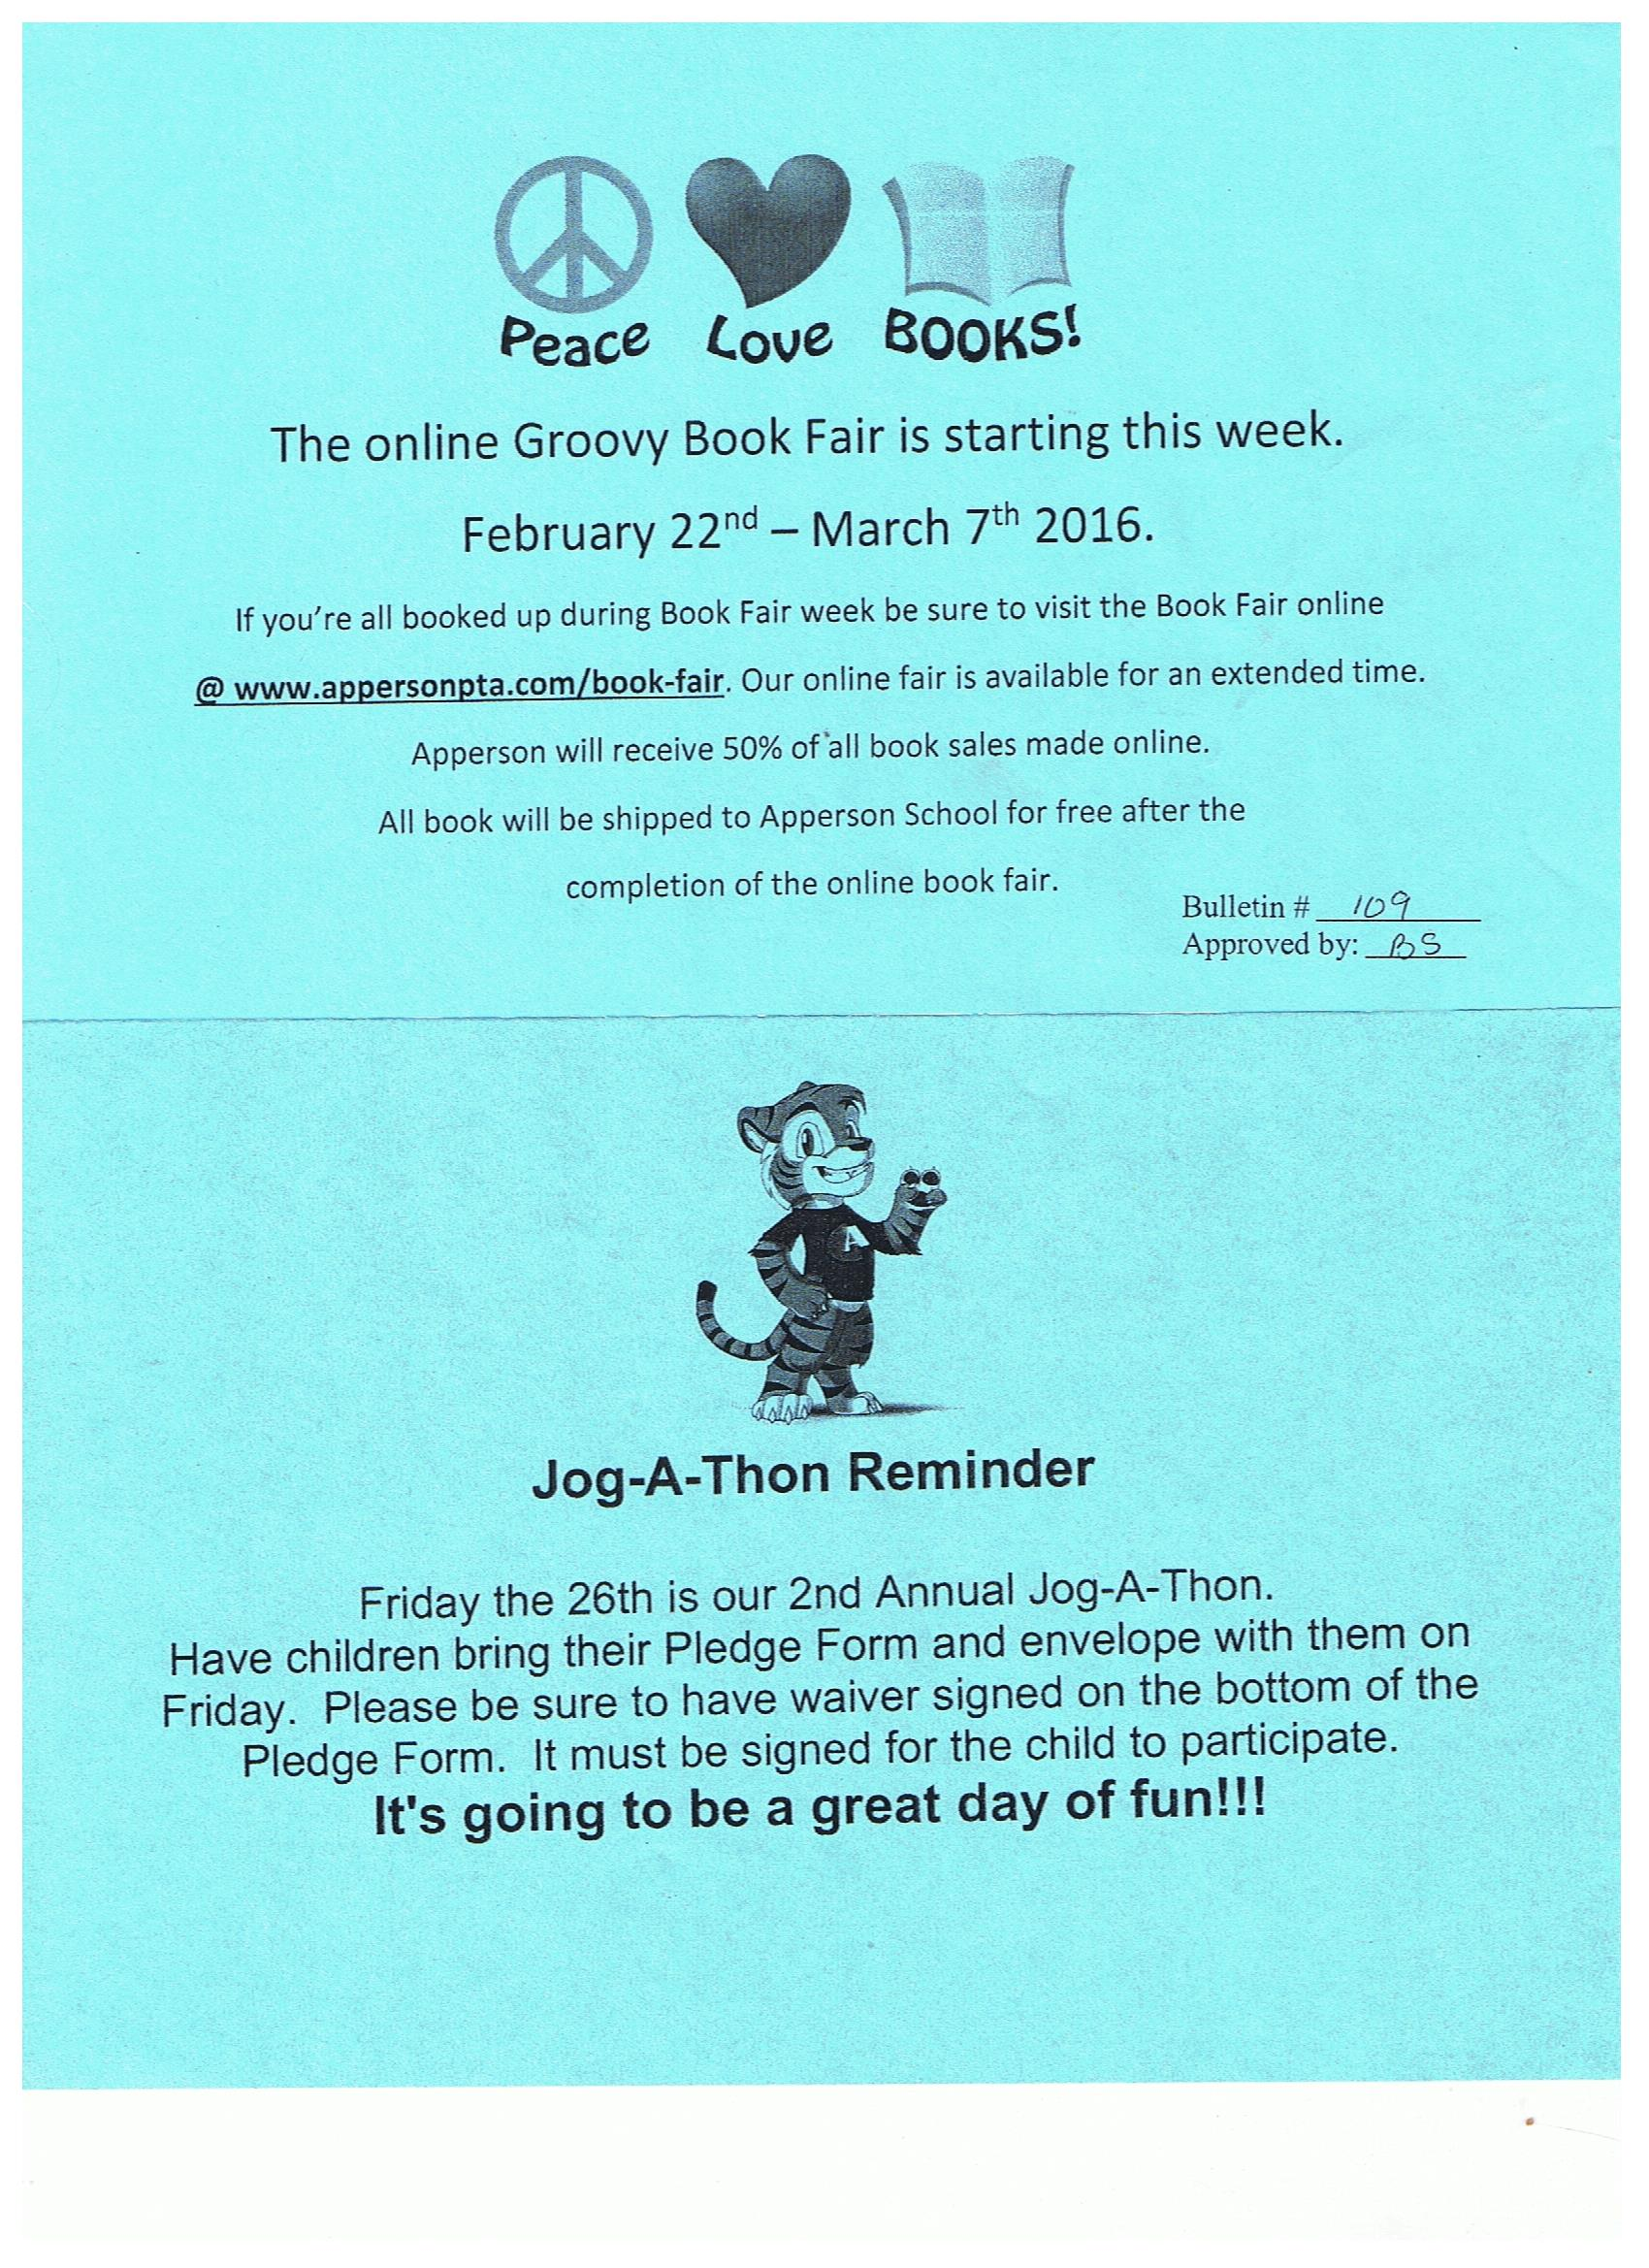 book fair and jogathon reminders